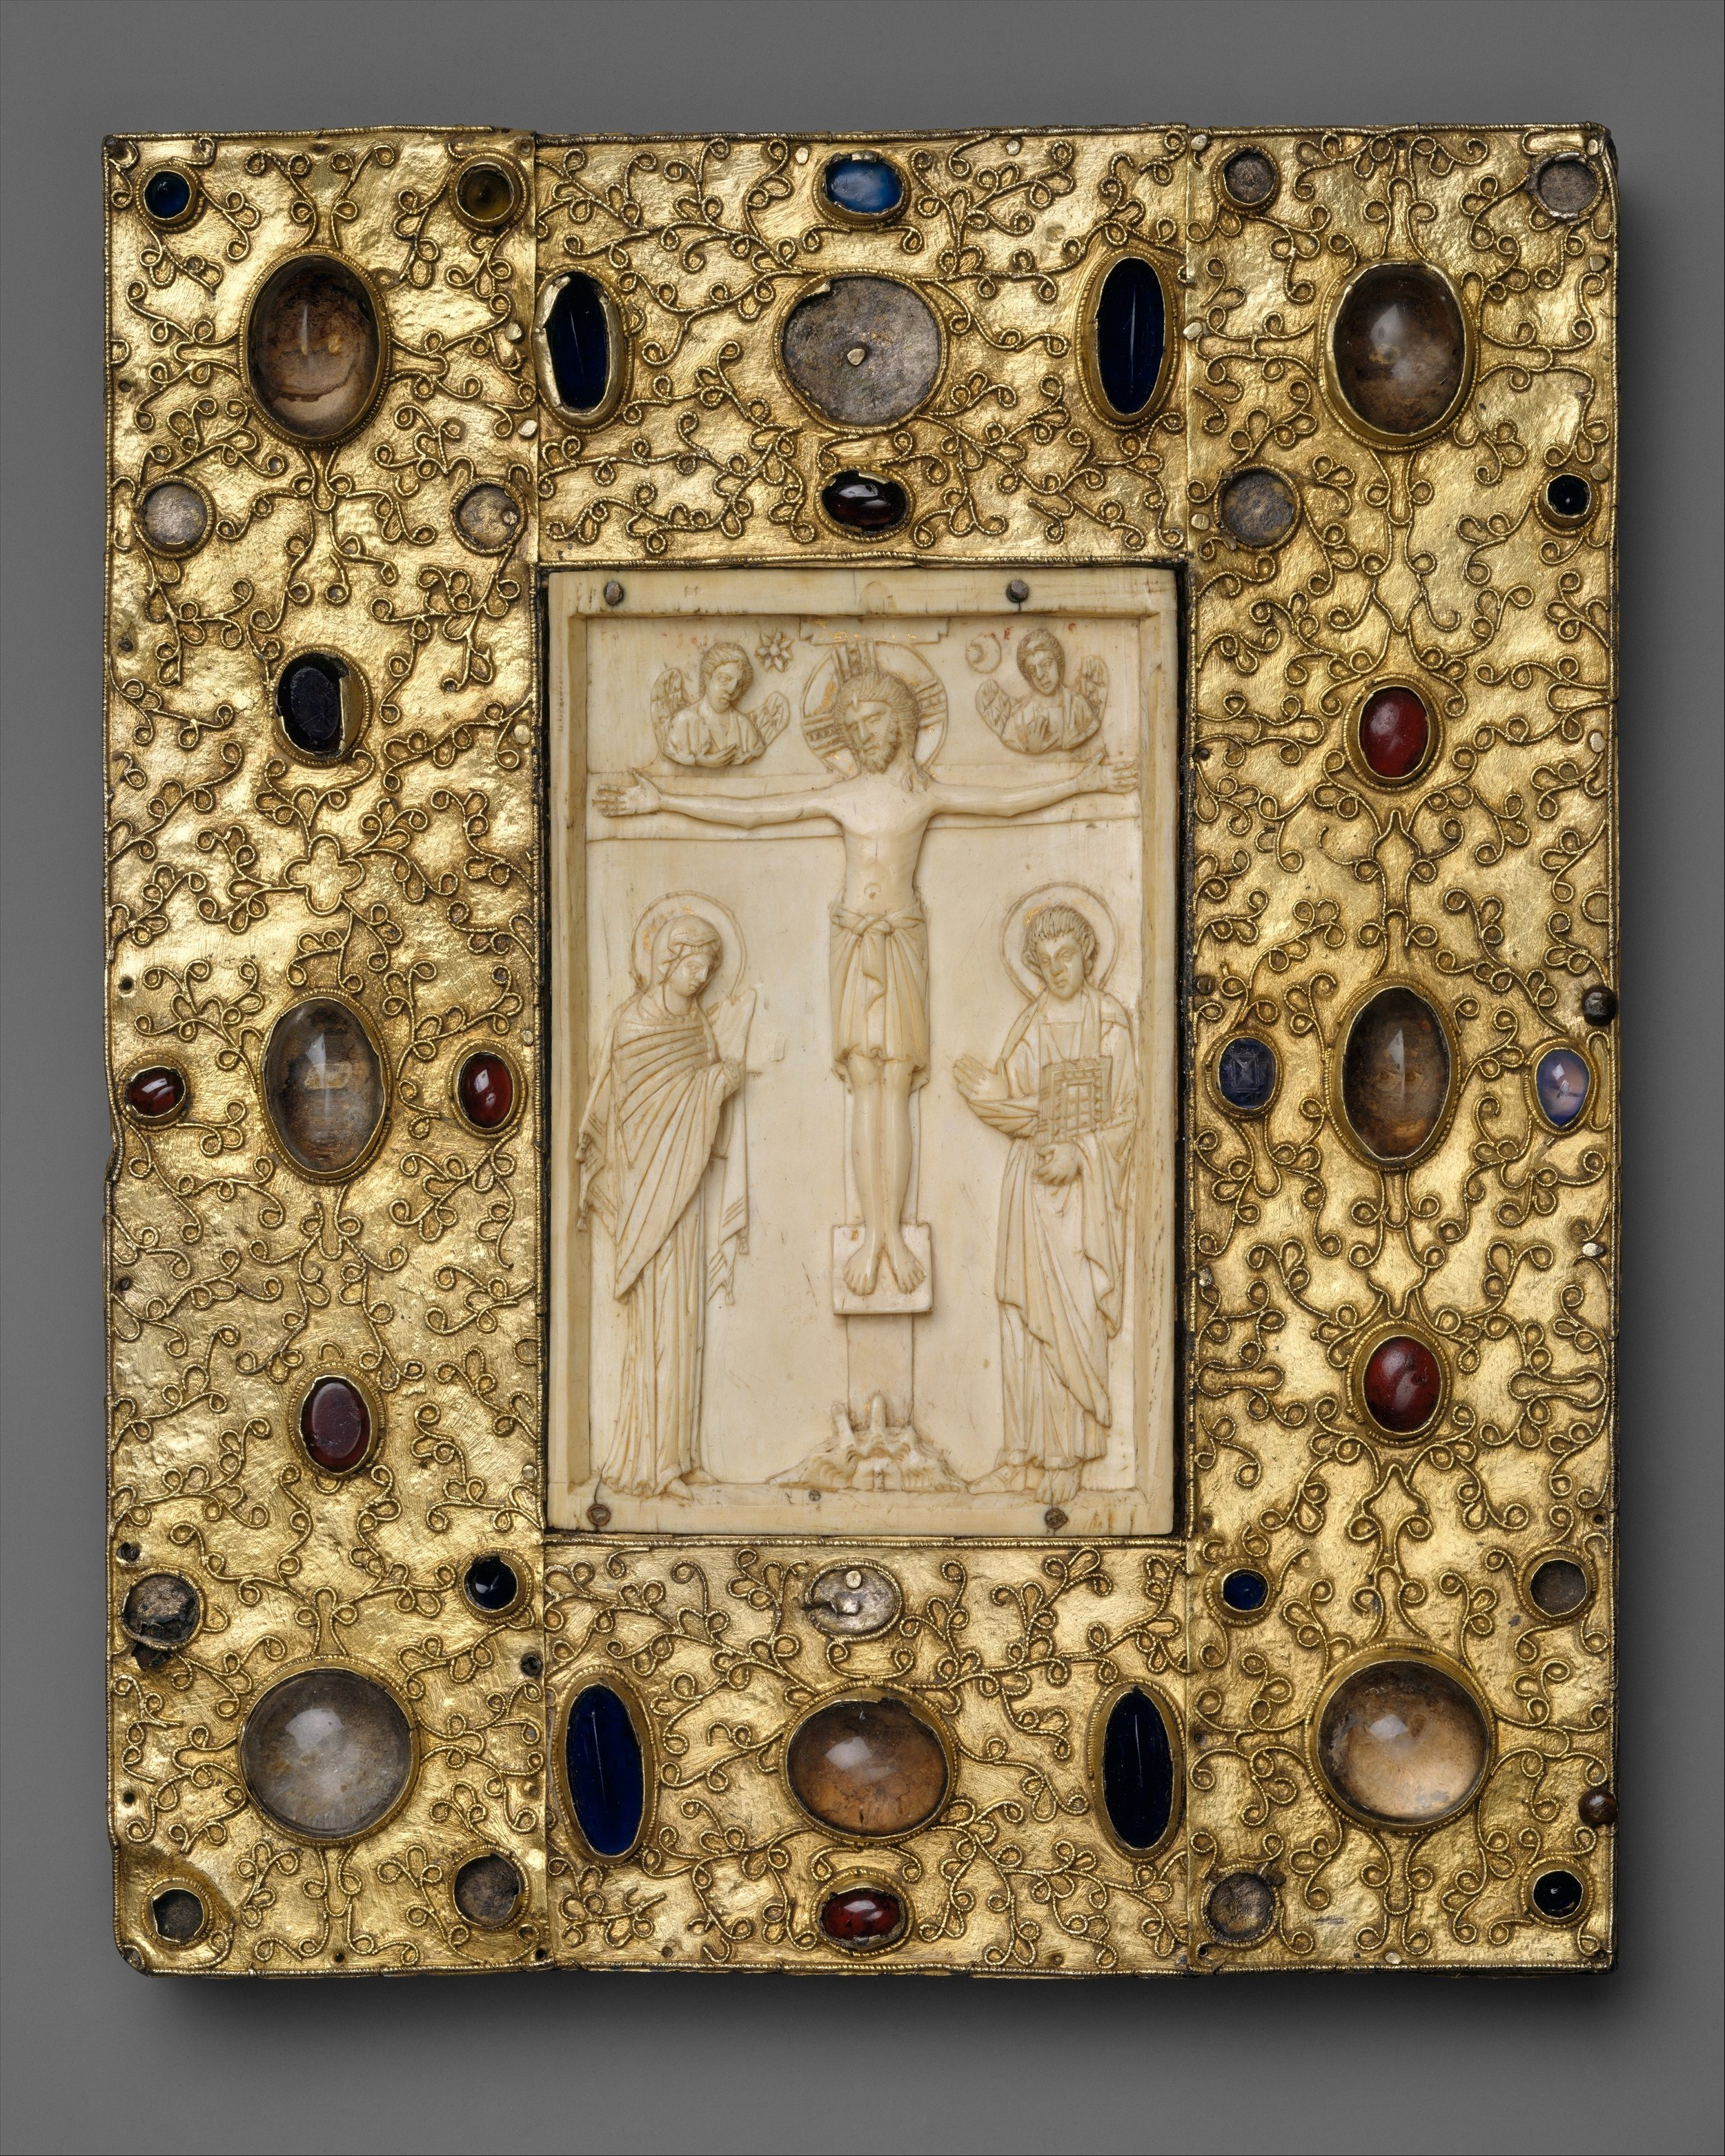 Met Museum  |Book Cover with Byzantine Icon of the Crucifixion,1058 CE